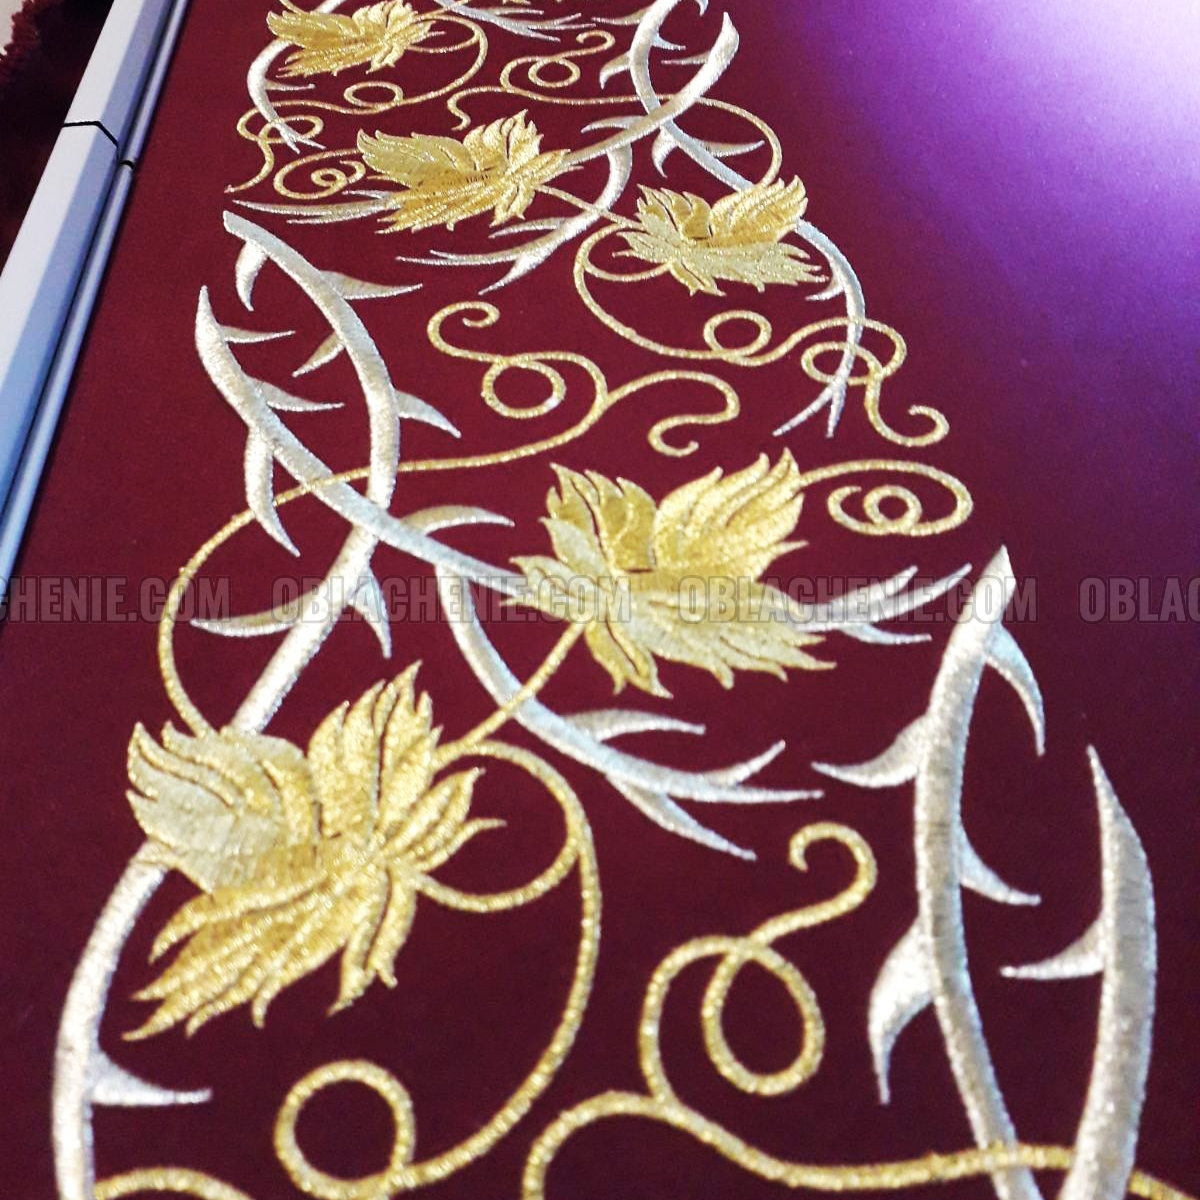 HOLY TABLE VESTMENTS 10986